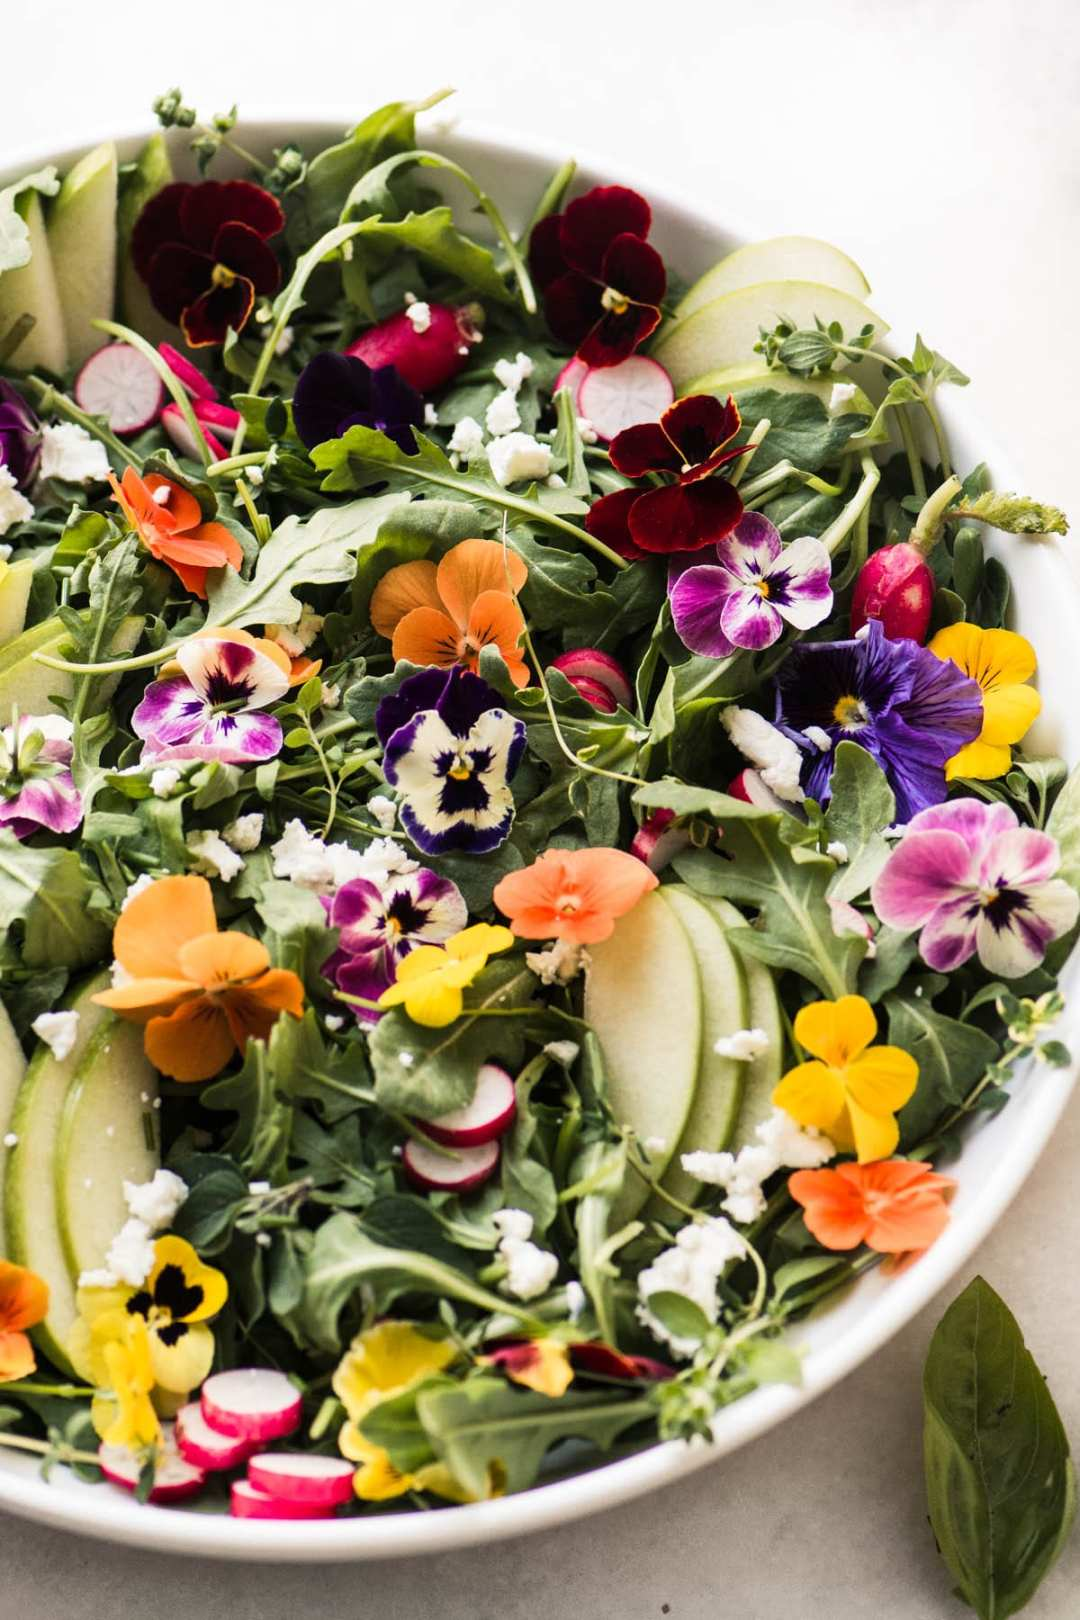 Winter pansy salad in a white bowl